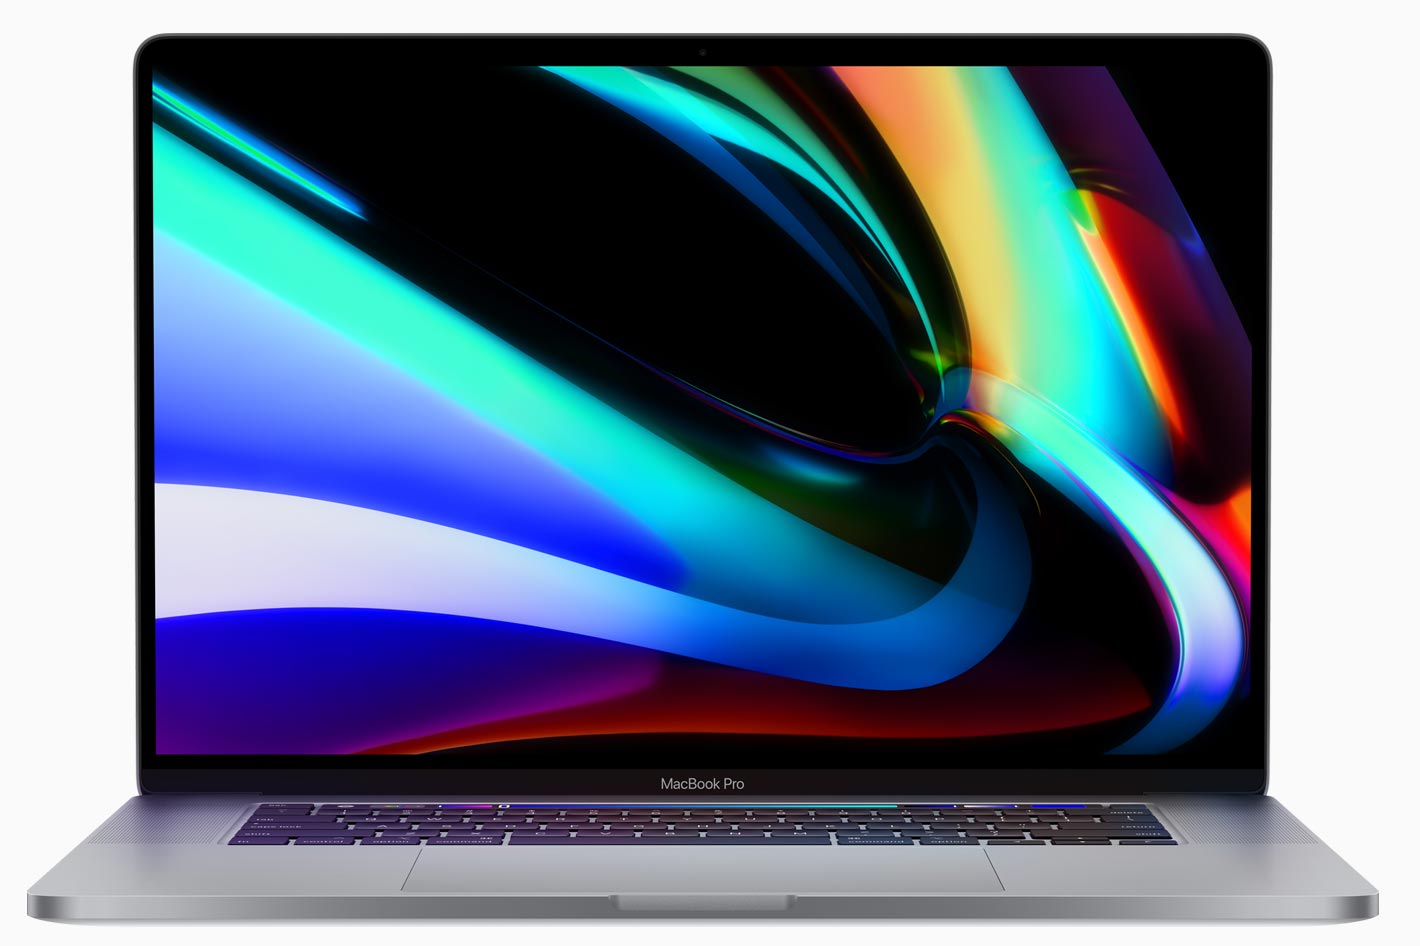 AMD Radeon Pro 5600M: desktop-class graphics power to MacBook Pro